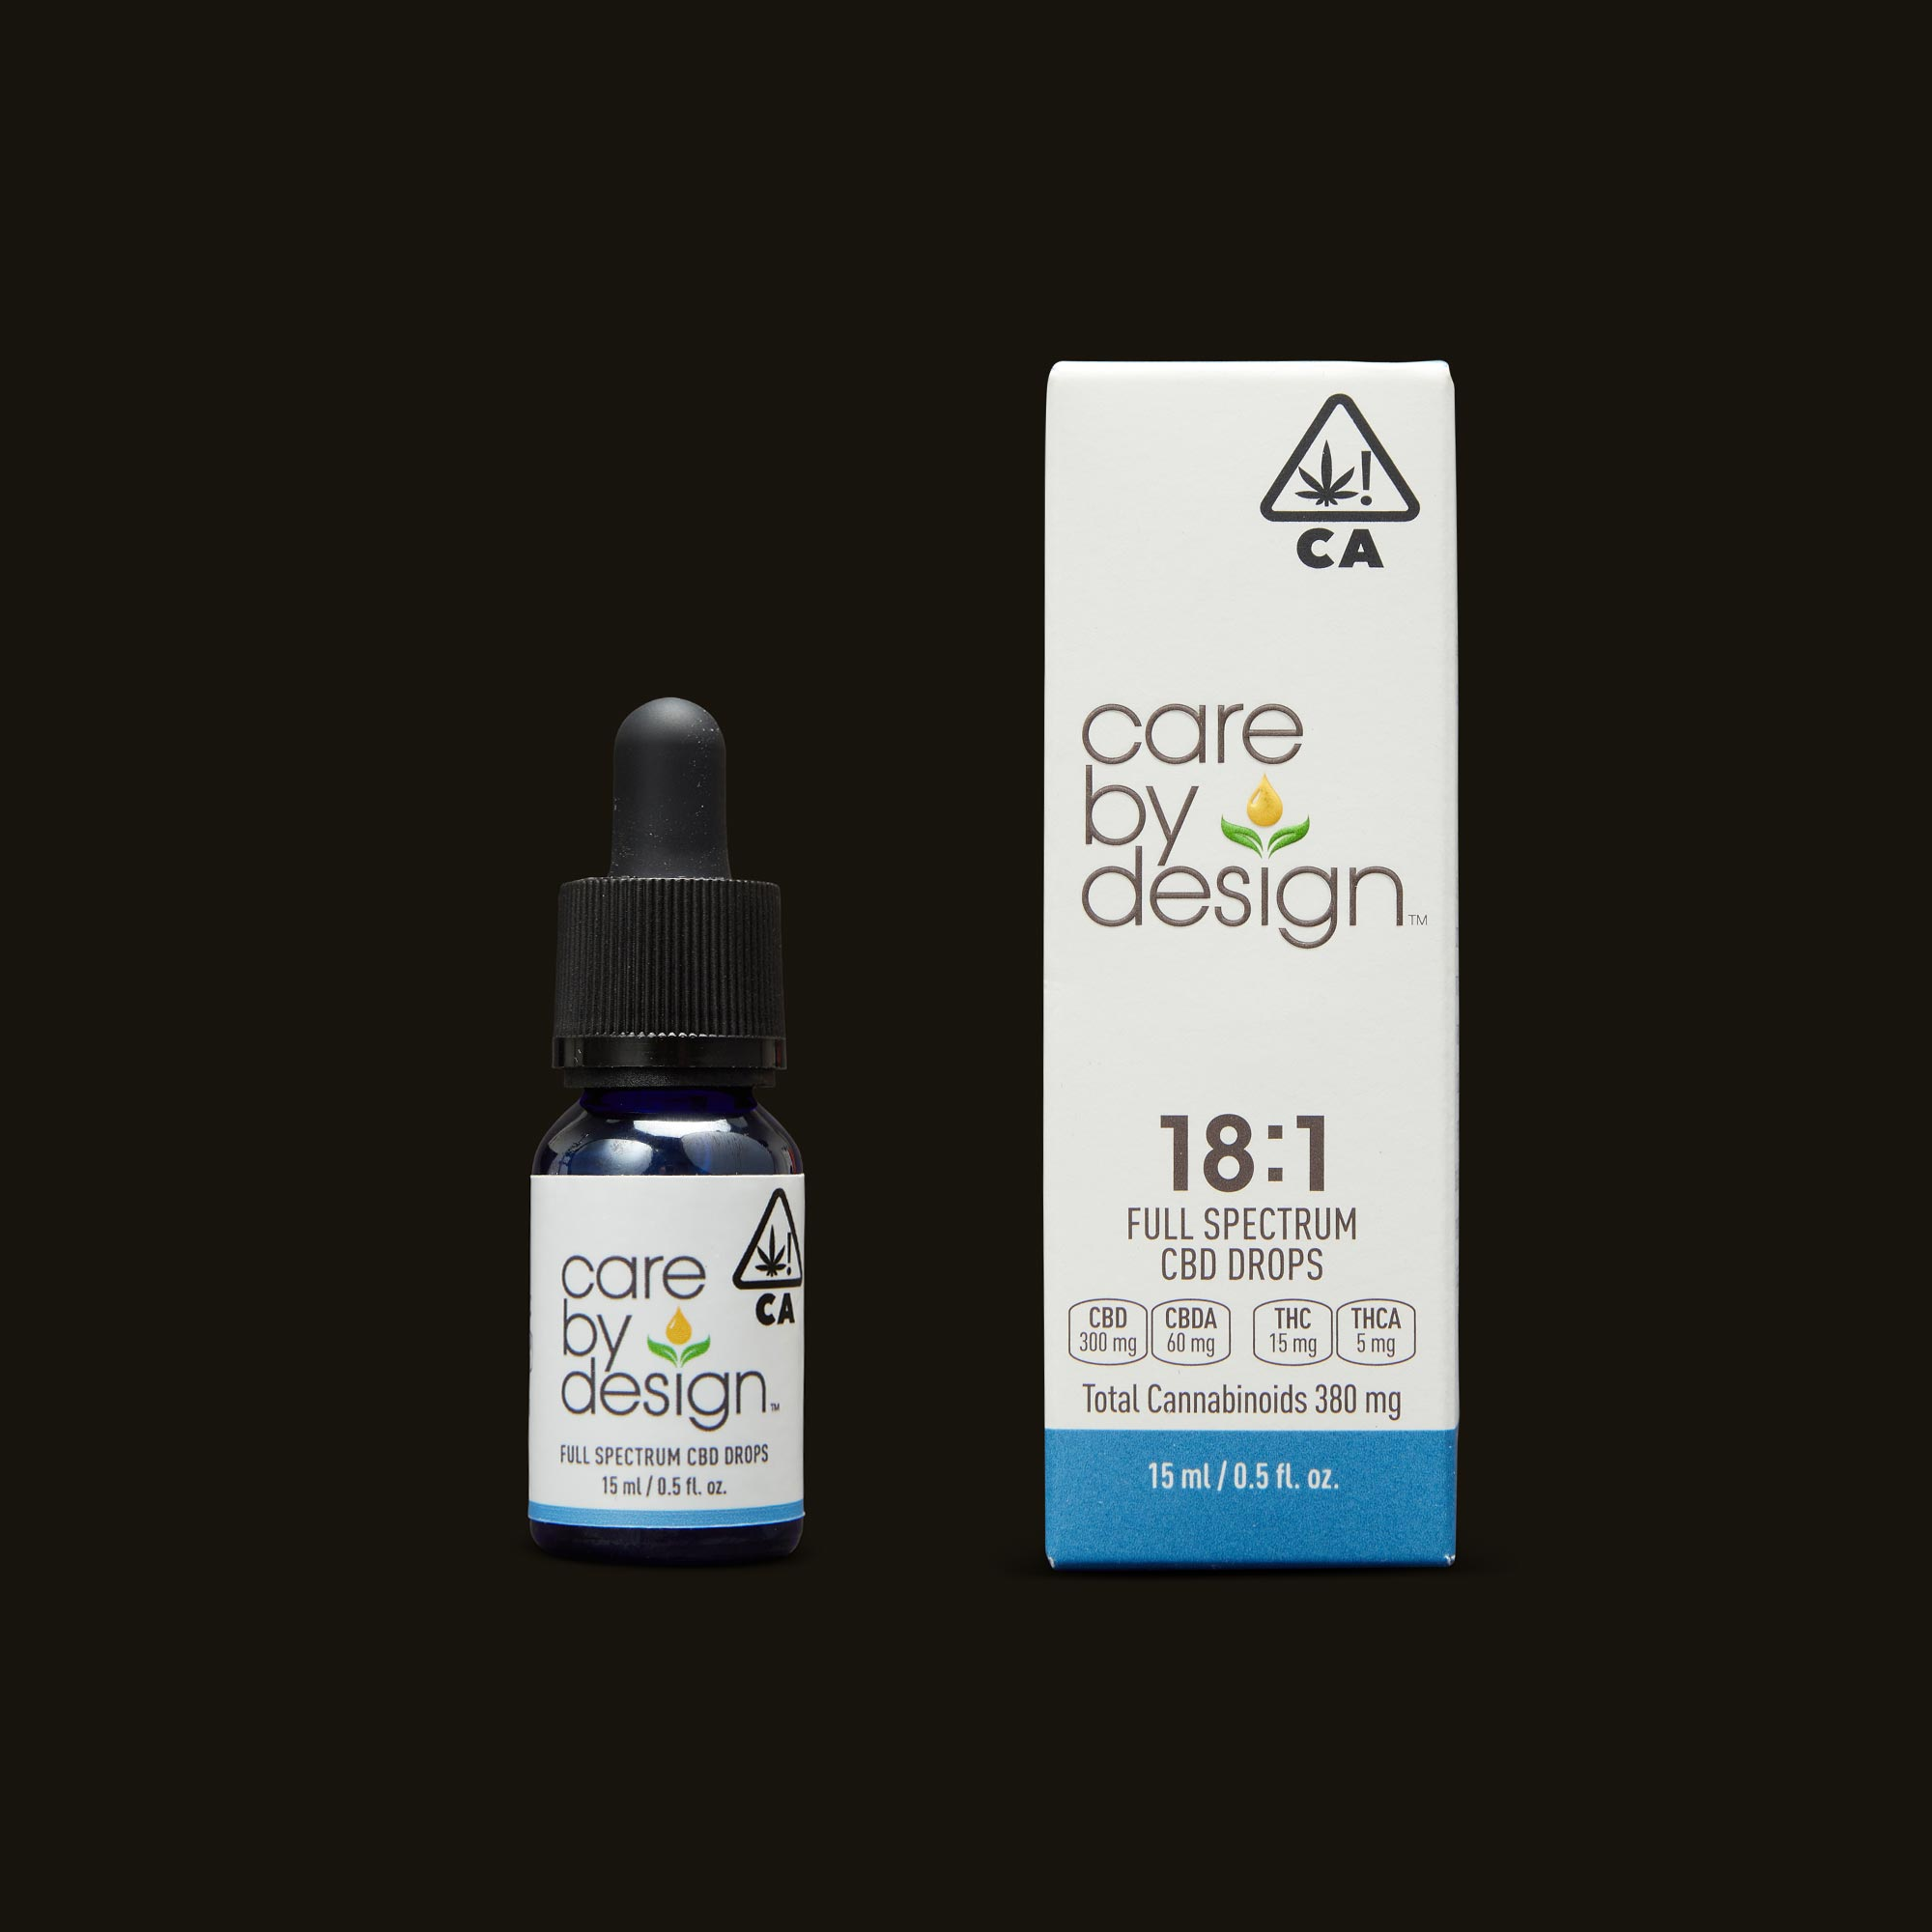 Care By Design 18:1 Full Spectrum CBD Drops - 0.5oz Tincture and Packaging